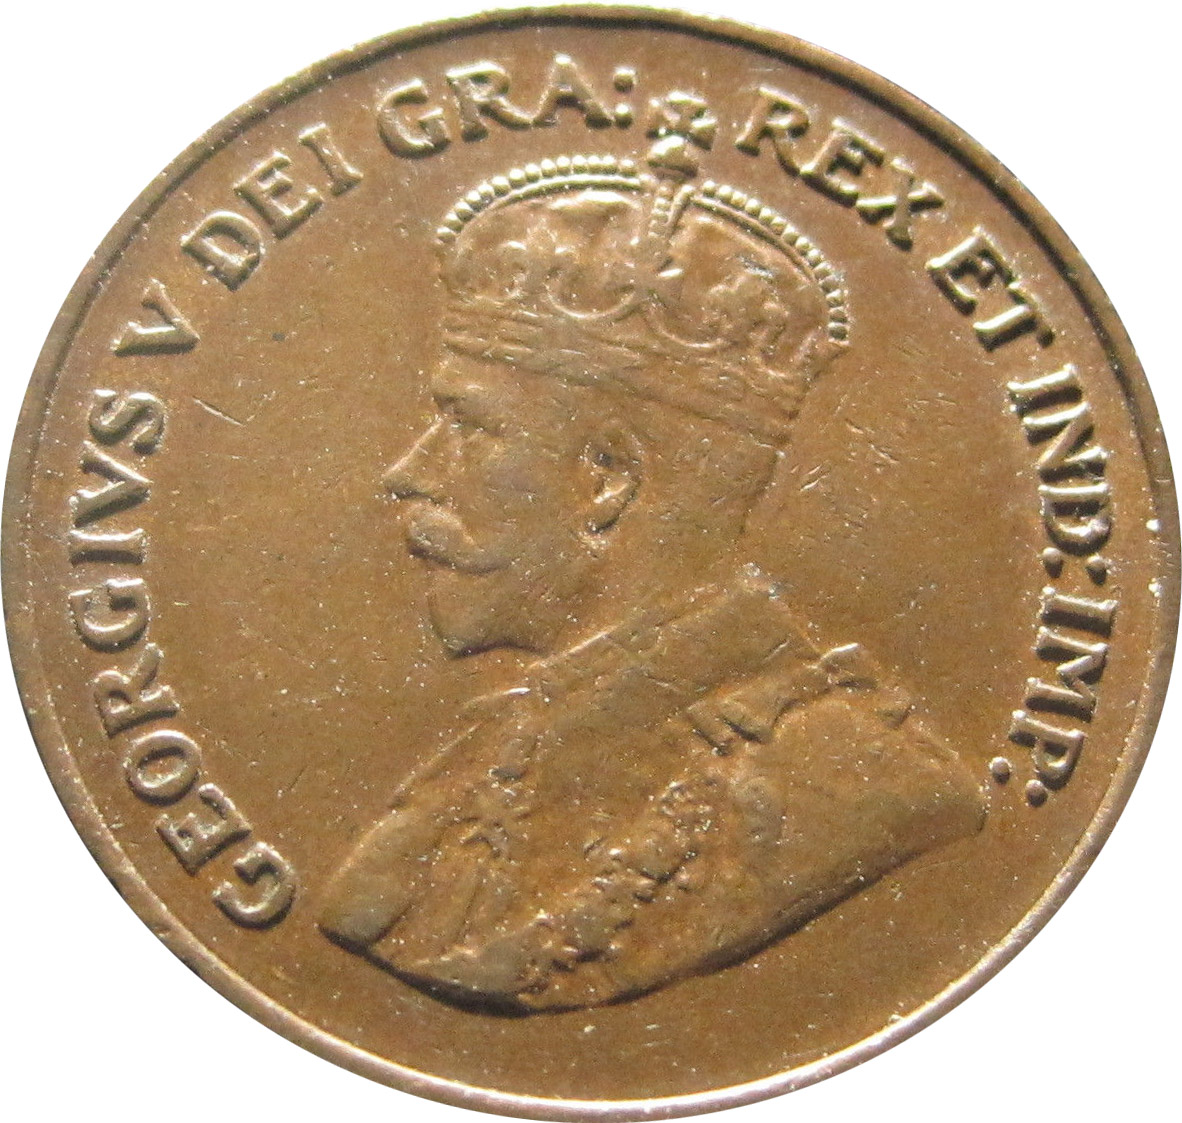 VF-20 - 1 cent 1920 to 1936 - George V